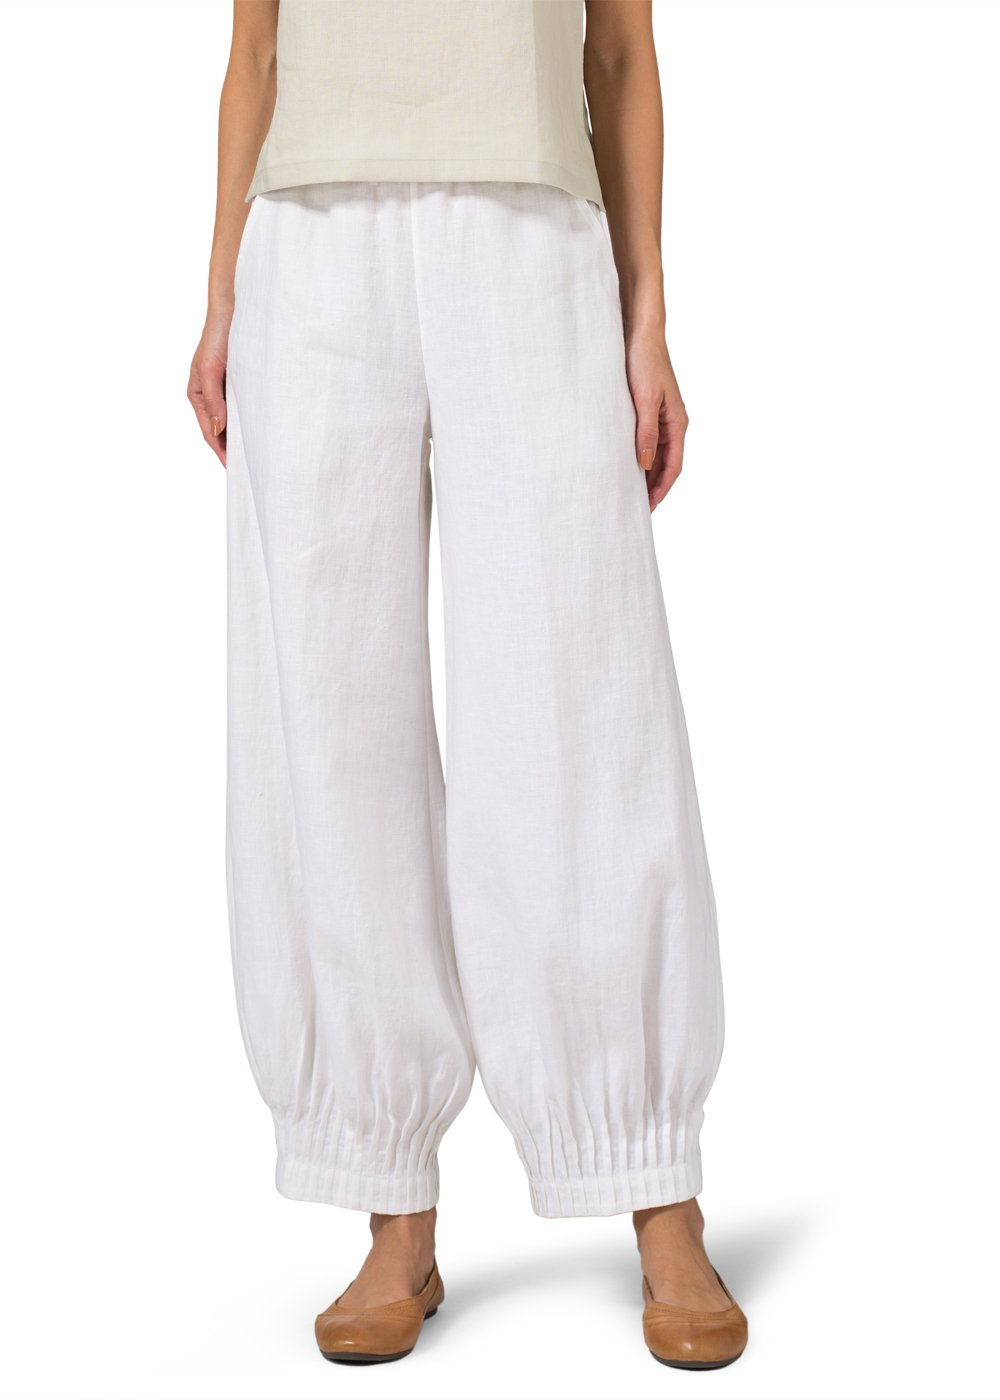 Vivid Linen Pleated Cuff Ankle Length Pants-M-Soft White